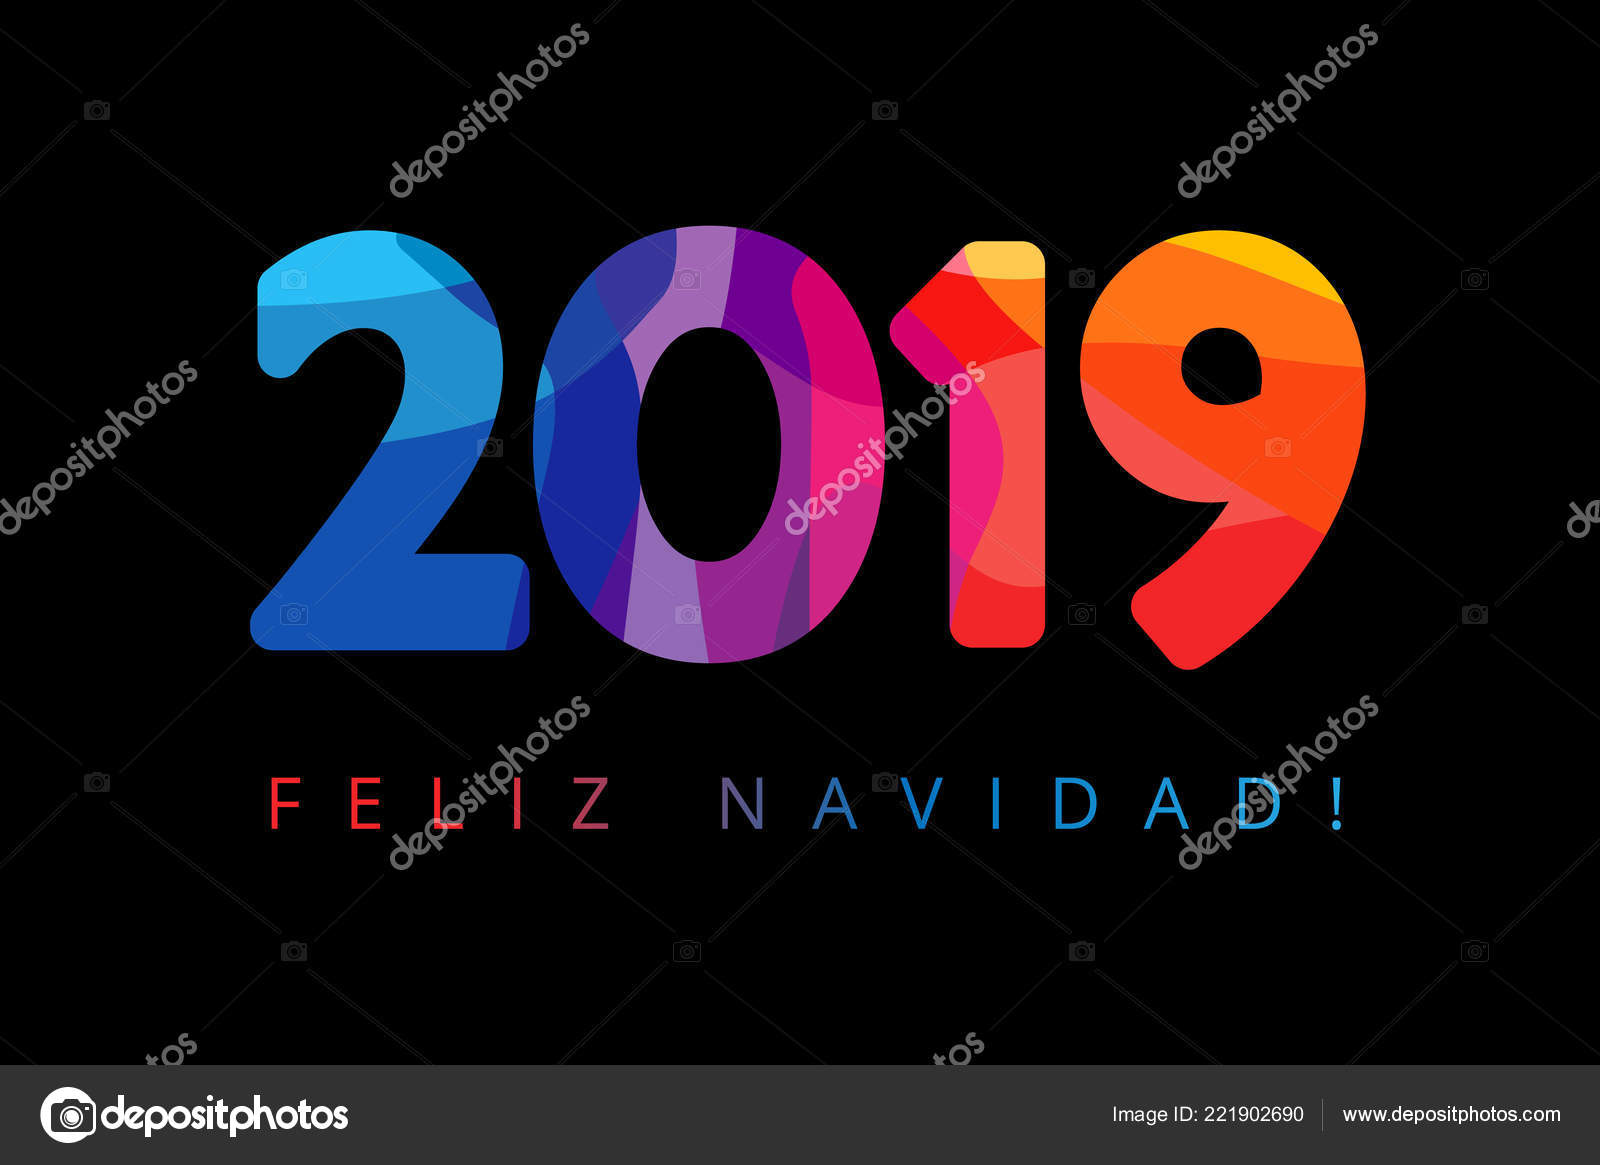 2019 feliz navidad xmas spanish greetings translate merry christmas holidays happy new year black background colorful stained shape isolated digits